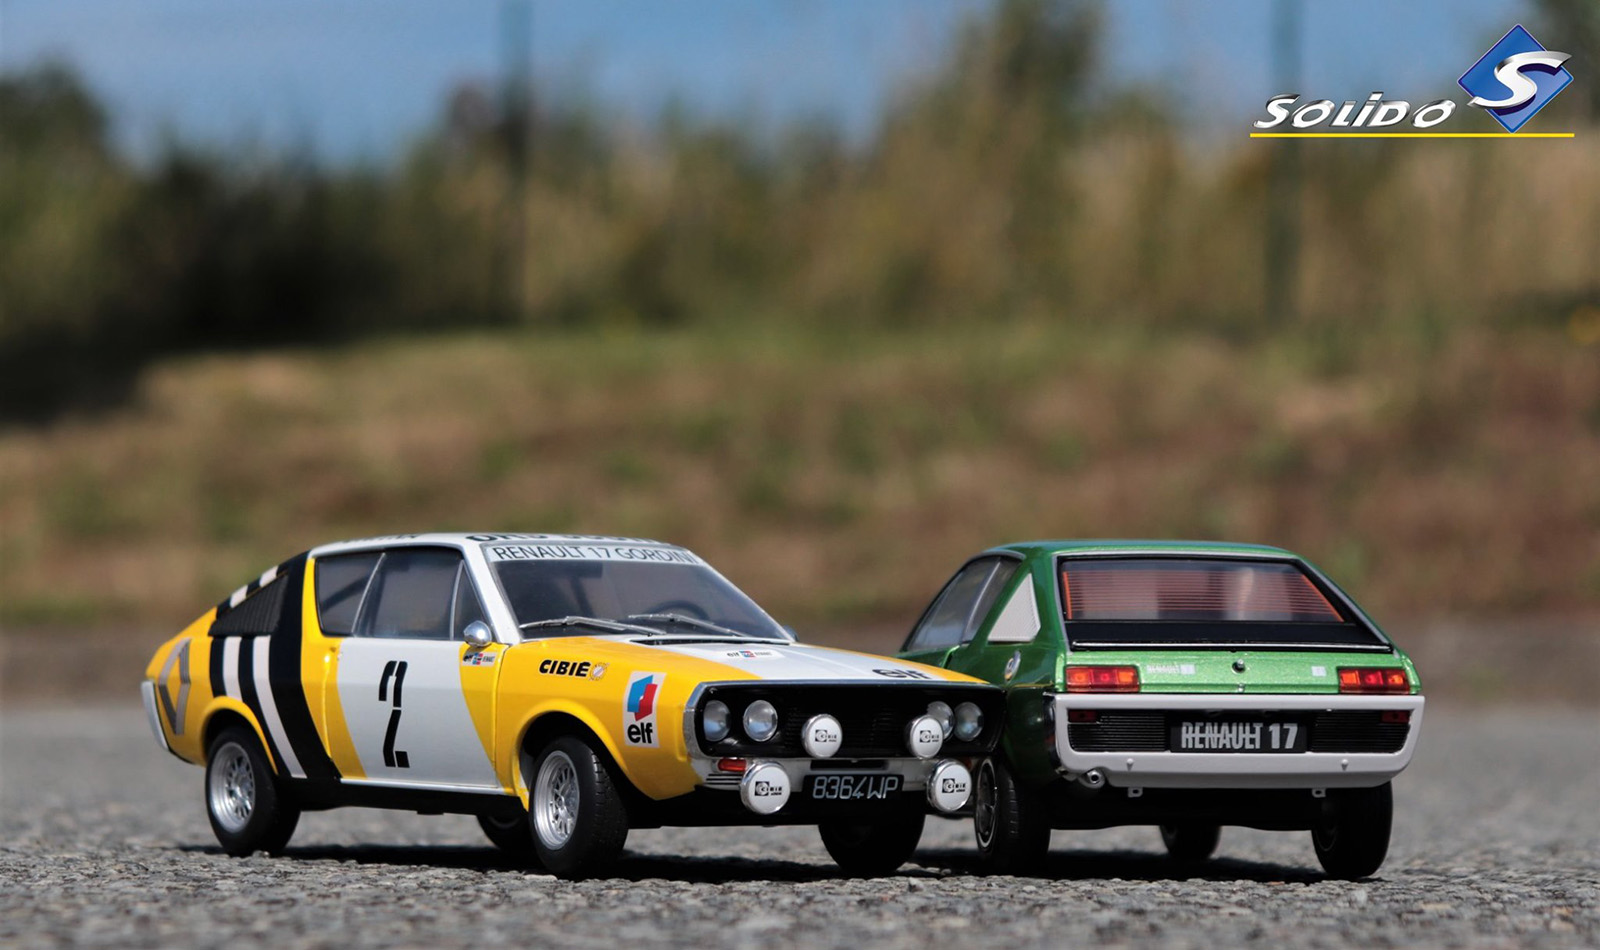 1/18 Renault 17 Solido